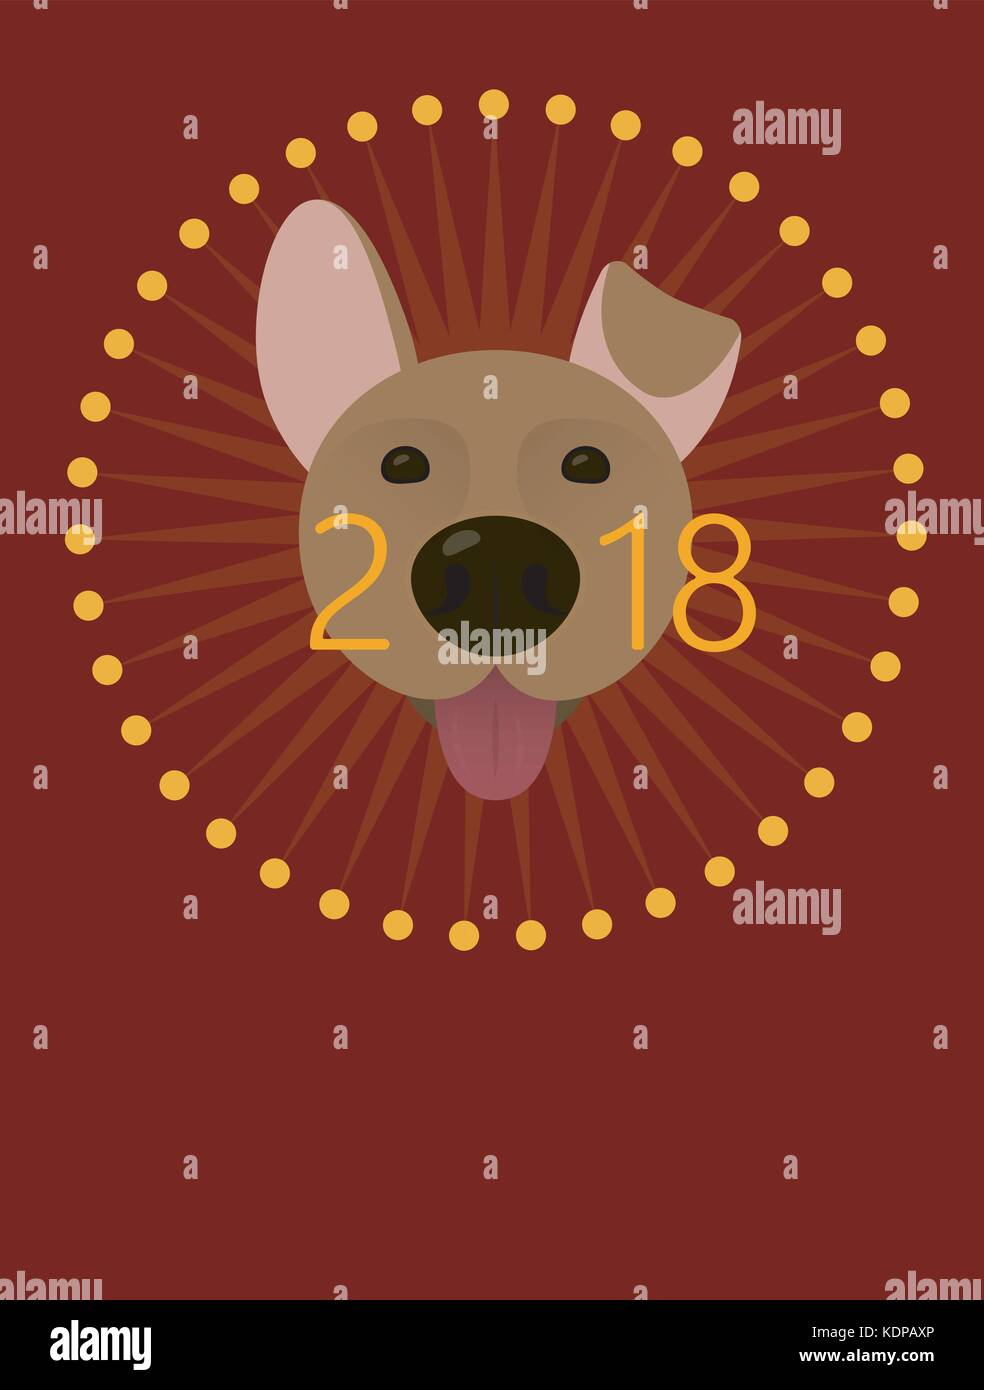 2018 Happy New Year Greeting Card Poster Celebration Background